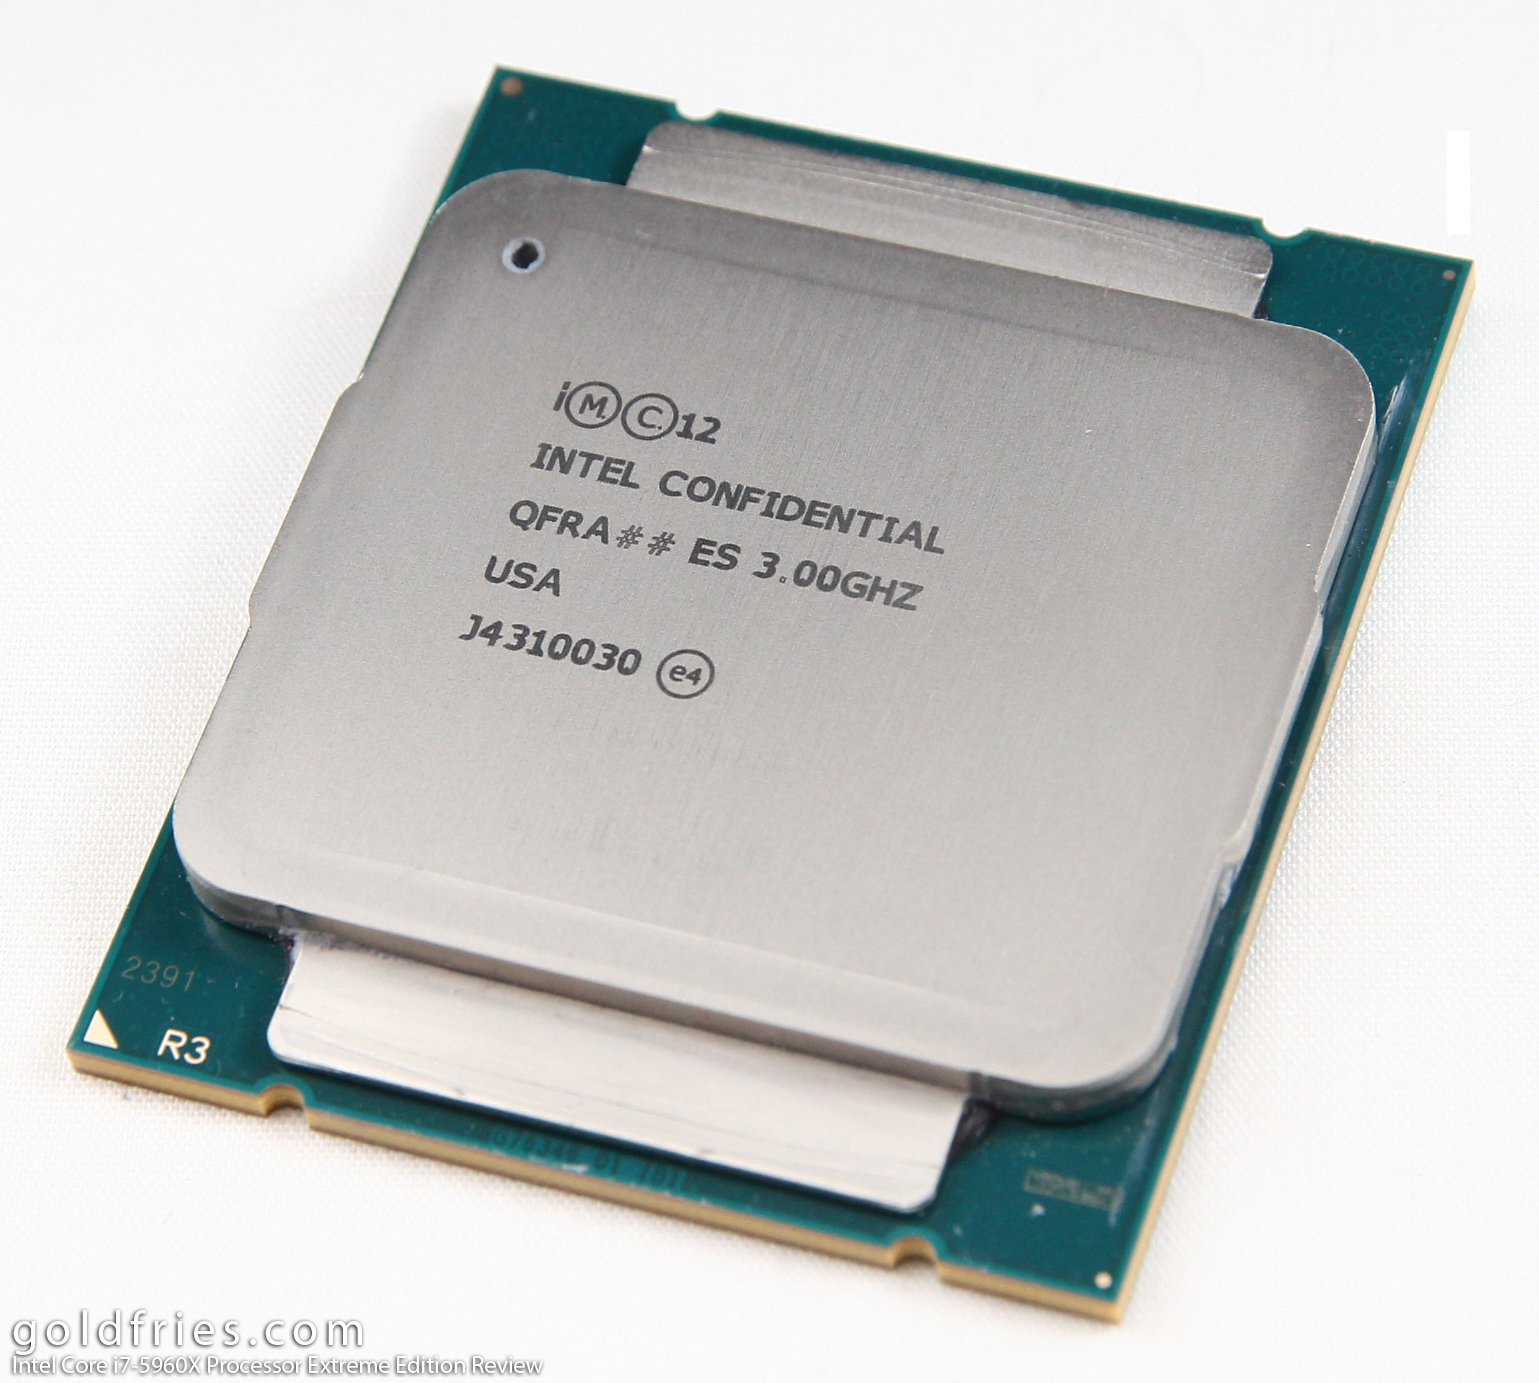 Intel Core i7-5960X Processor Extreme Edition Review